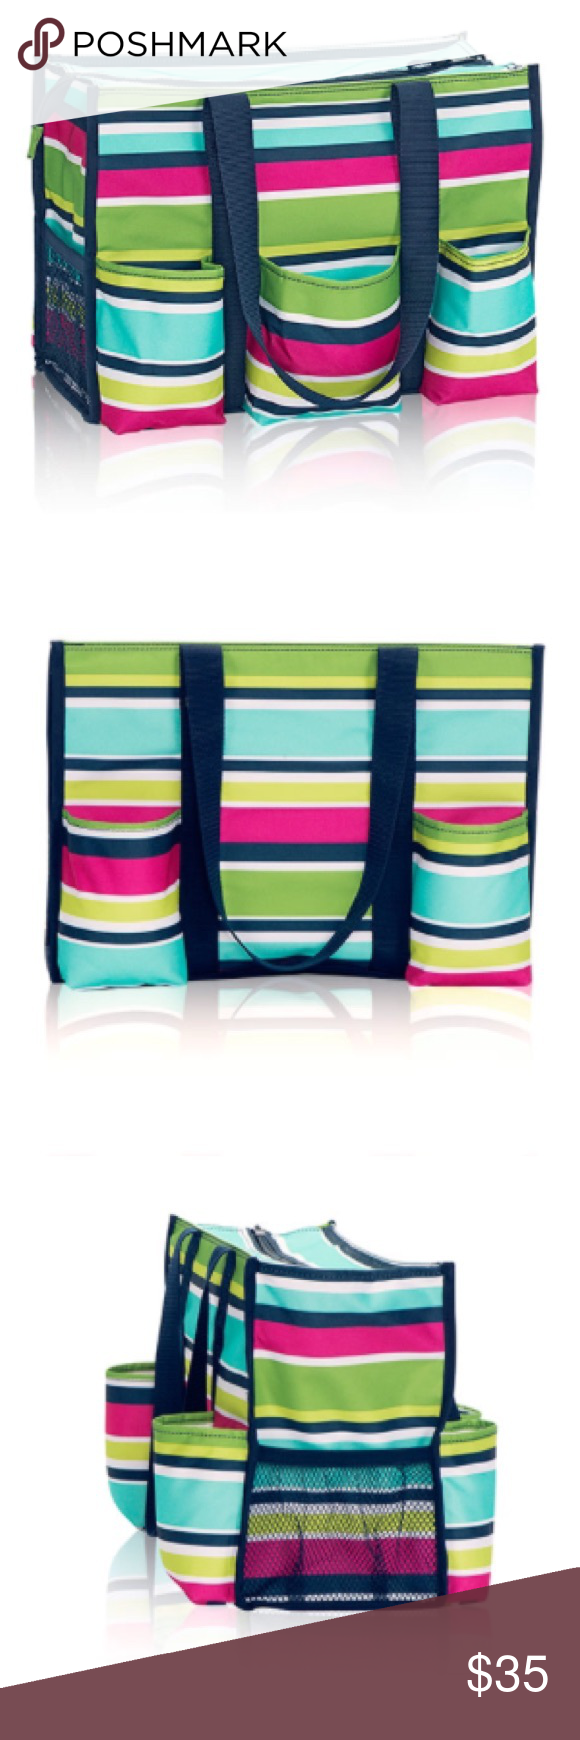 Listing Thirty One Zip Top Organizing Tote Brand New In